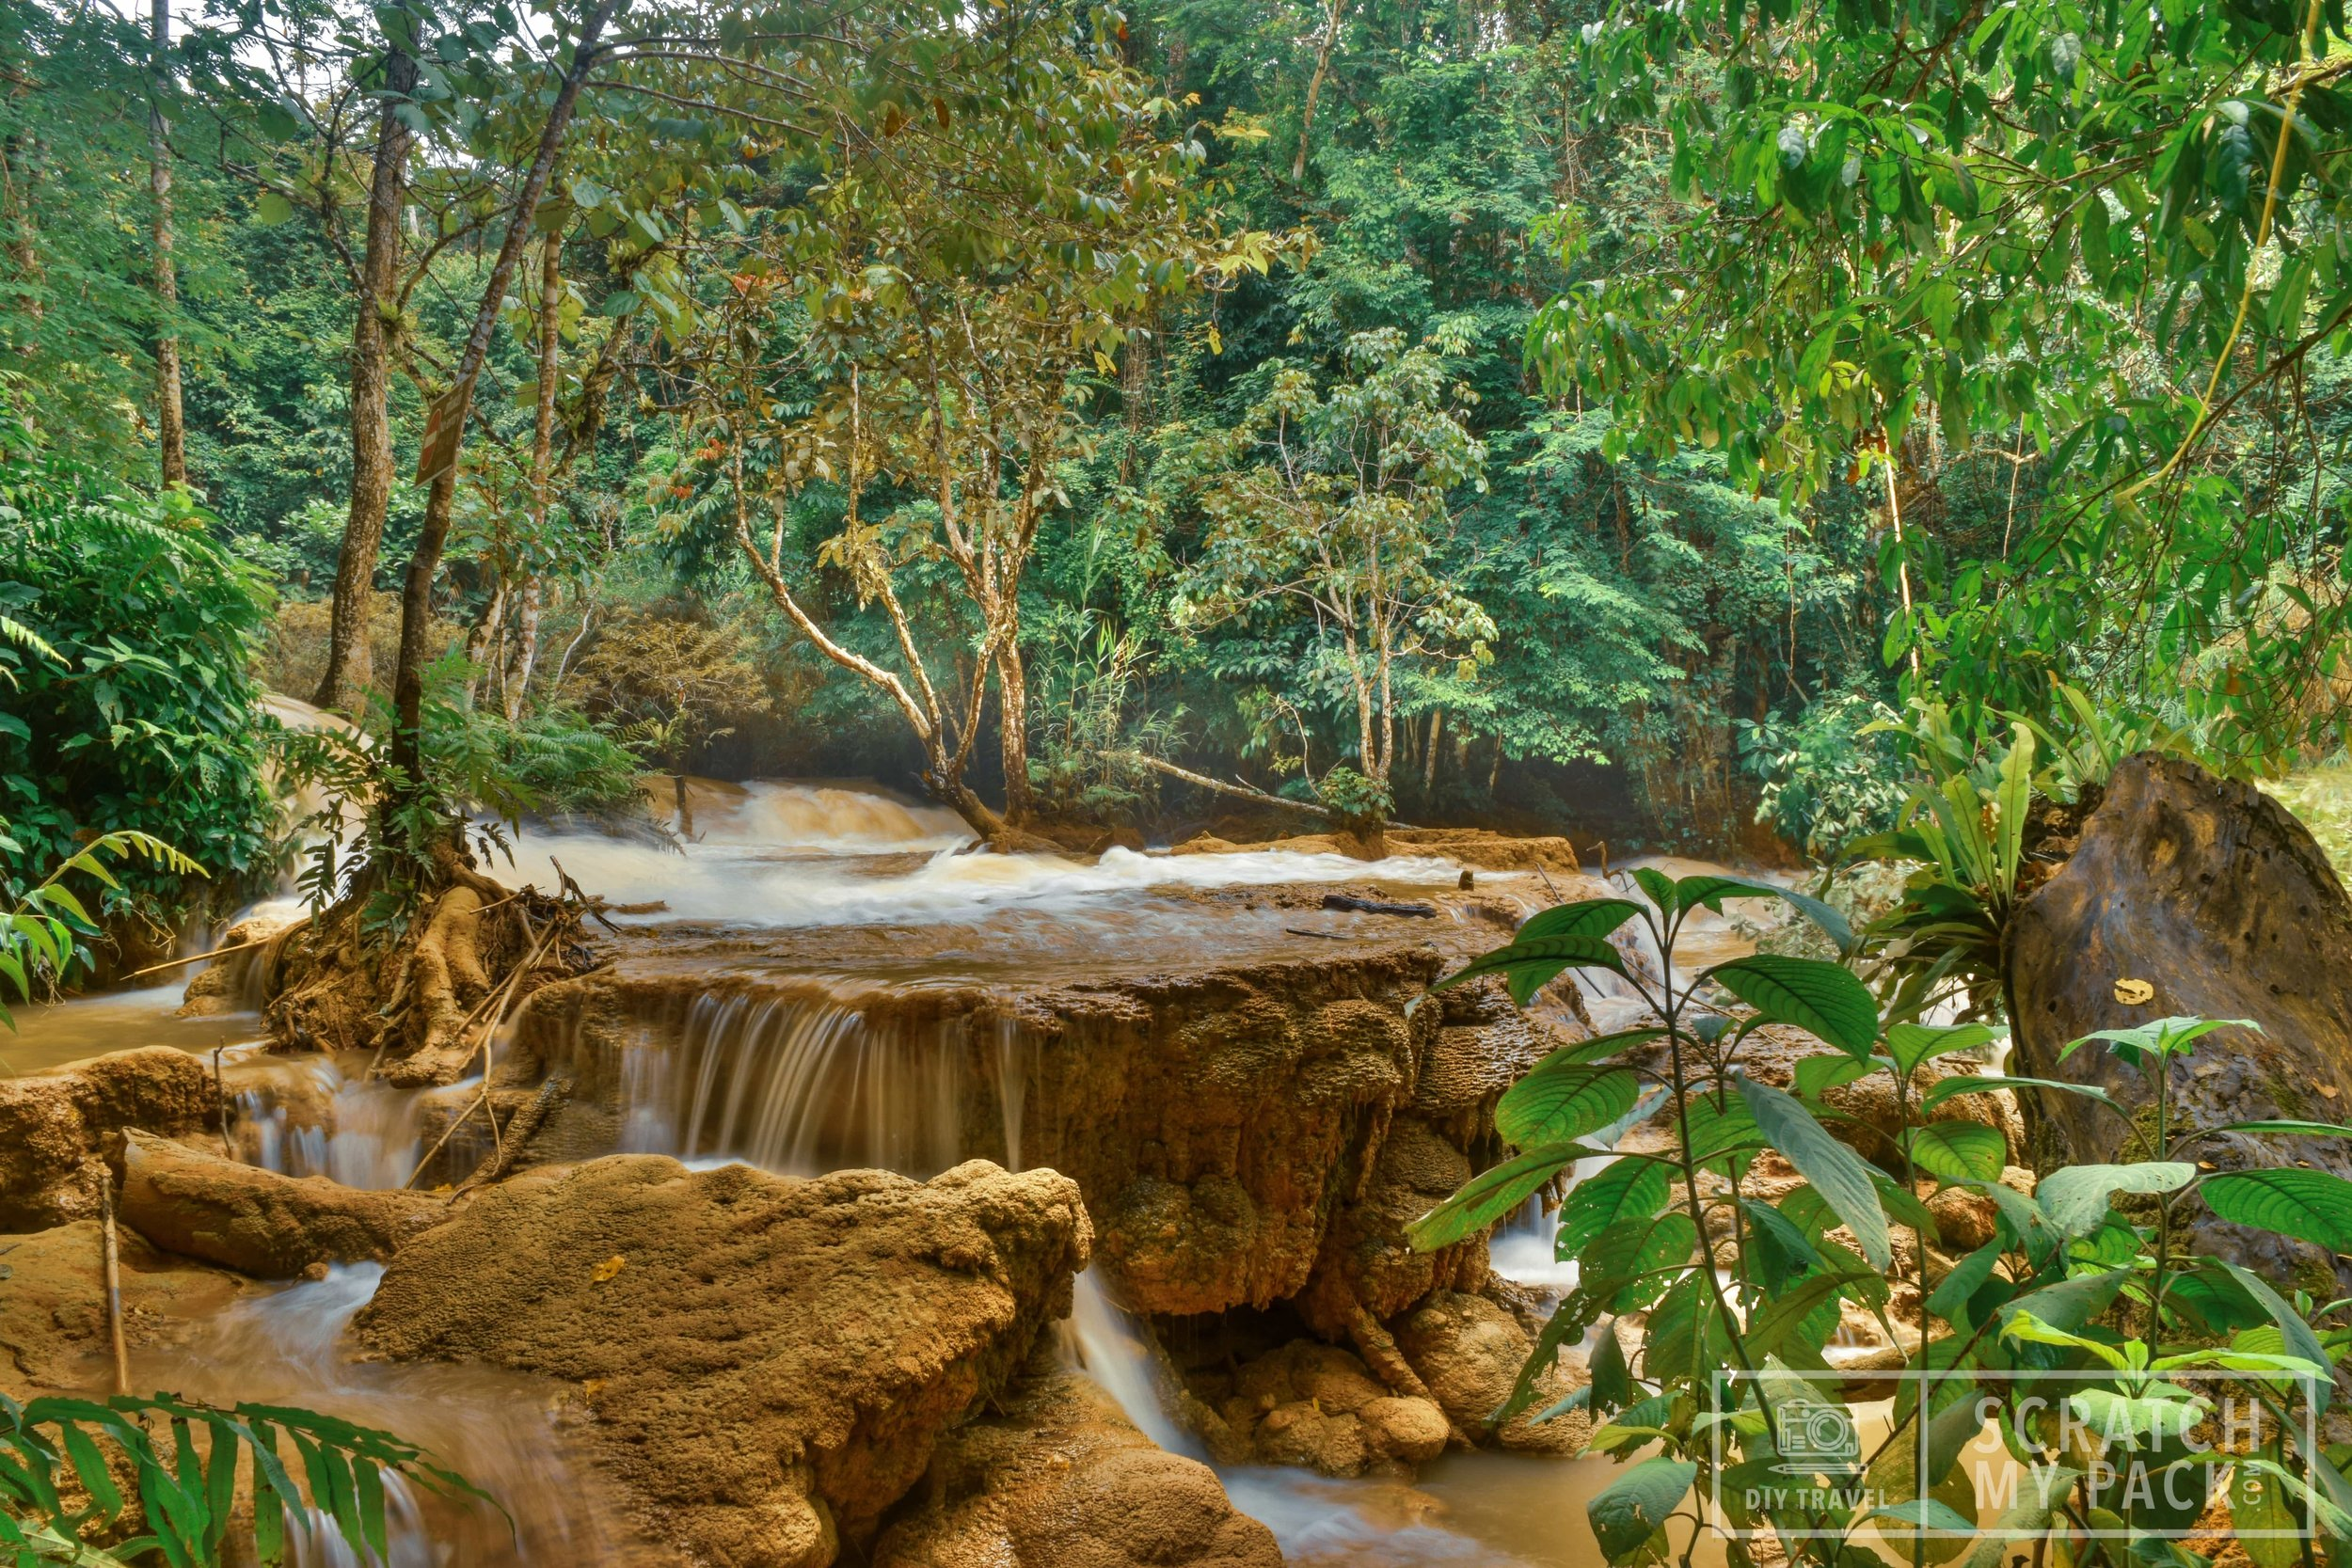 Luang Prabang: Waterfall Hike: This is an activity you will surely do when you visit this city. Wether you book a tour through your hotel or from any of the dozens of people on the street offering tours, this waterfall is an awesome half day adventure!